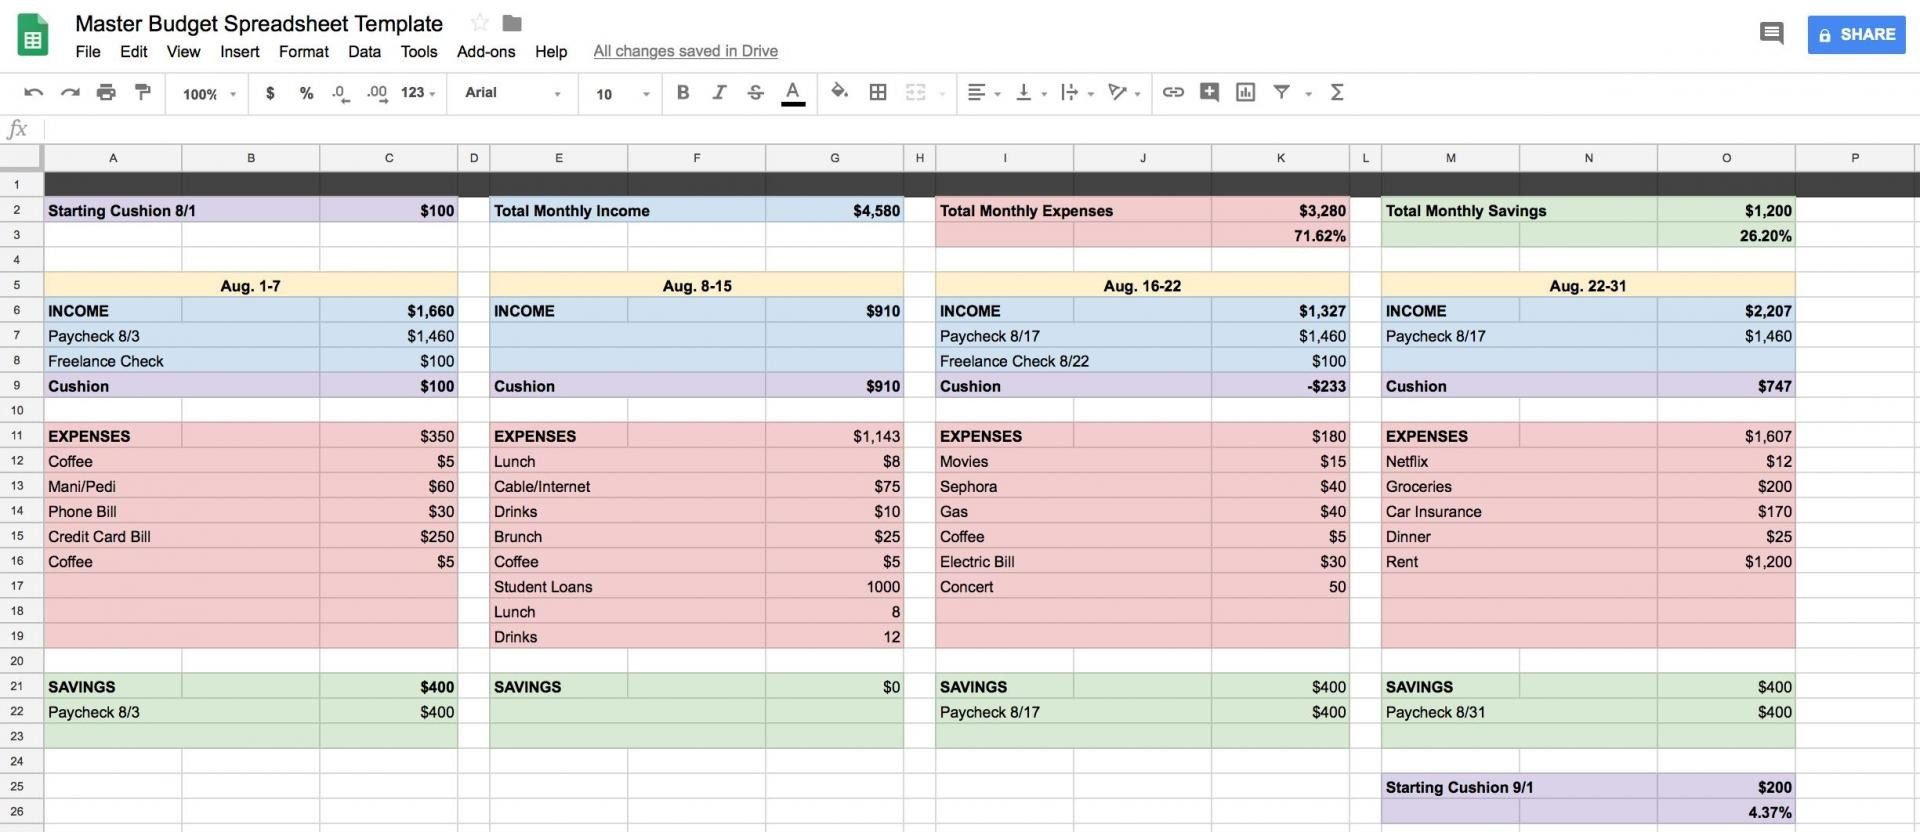 budget template google sheets  How To Create A Budget Spreadsheet In Google Sheets - budget template google sheets